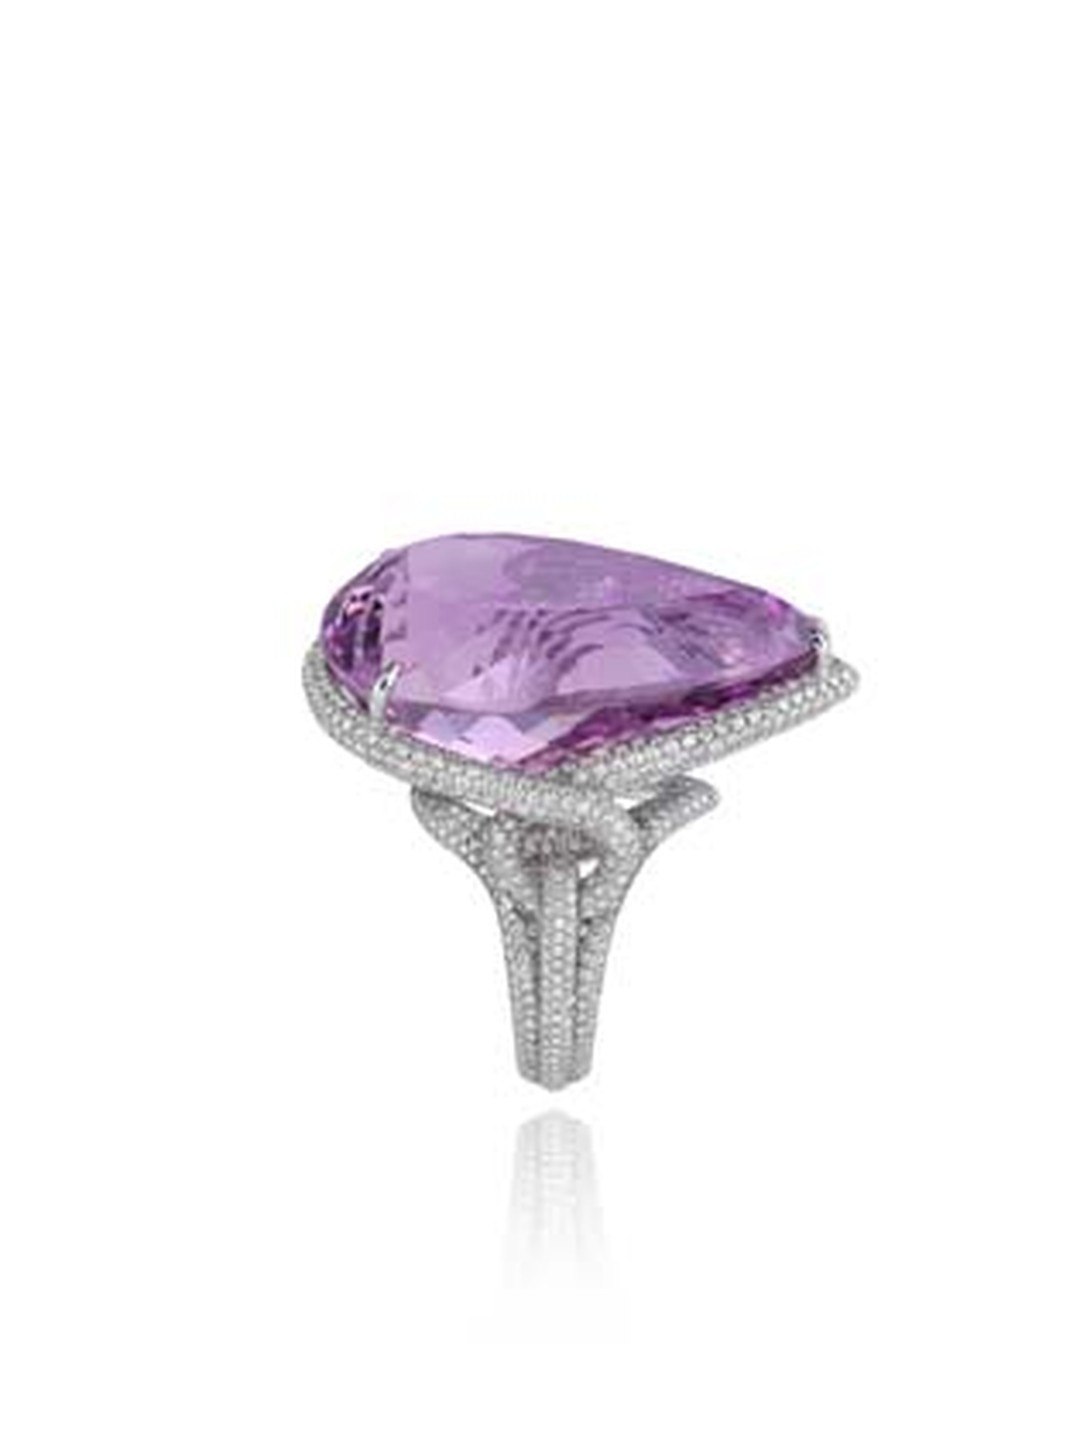 829174-1002 Kunzite Ring  from the Red Carpet Collection 2013Chopard.jpg